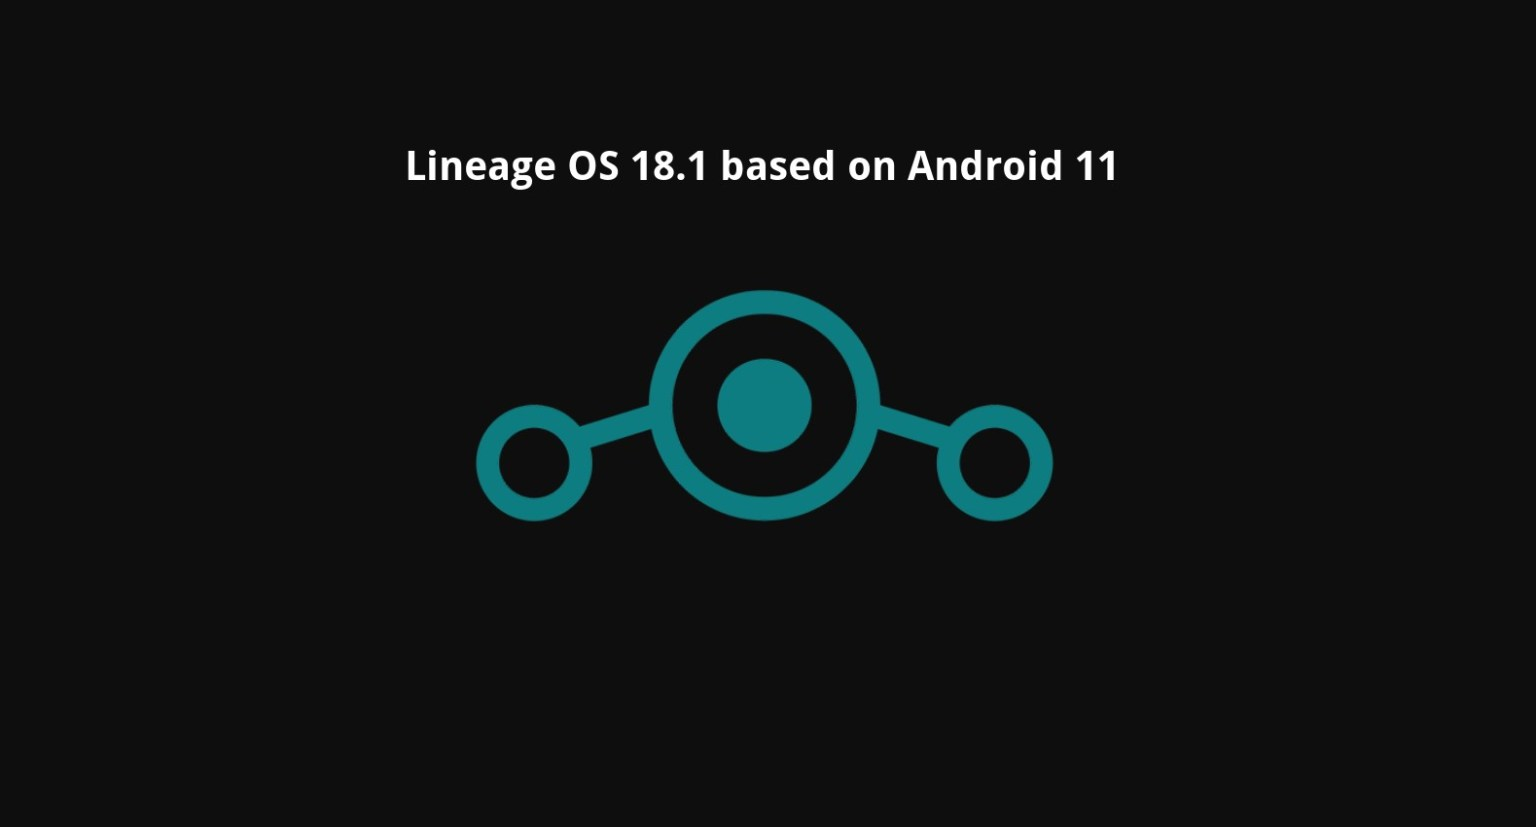 [Download] Lineage OS 18.1 based on Android 11 for Samsung Galaxy S7 and S7 Edge